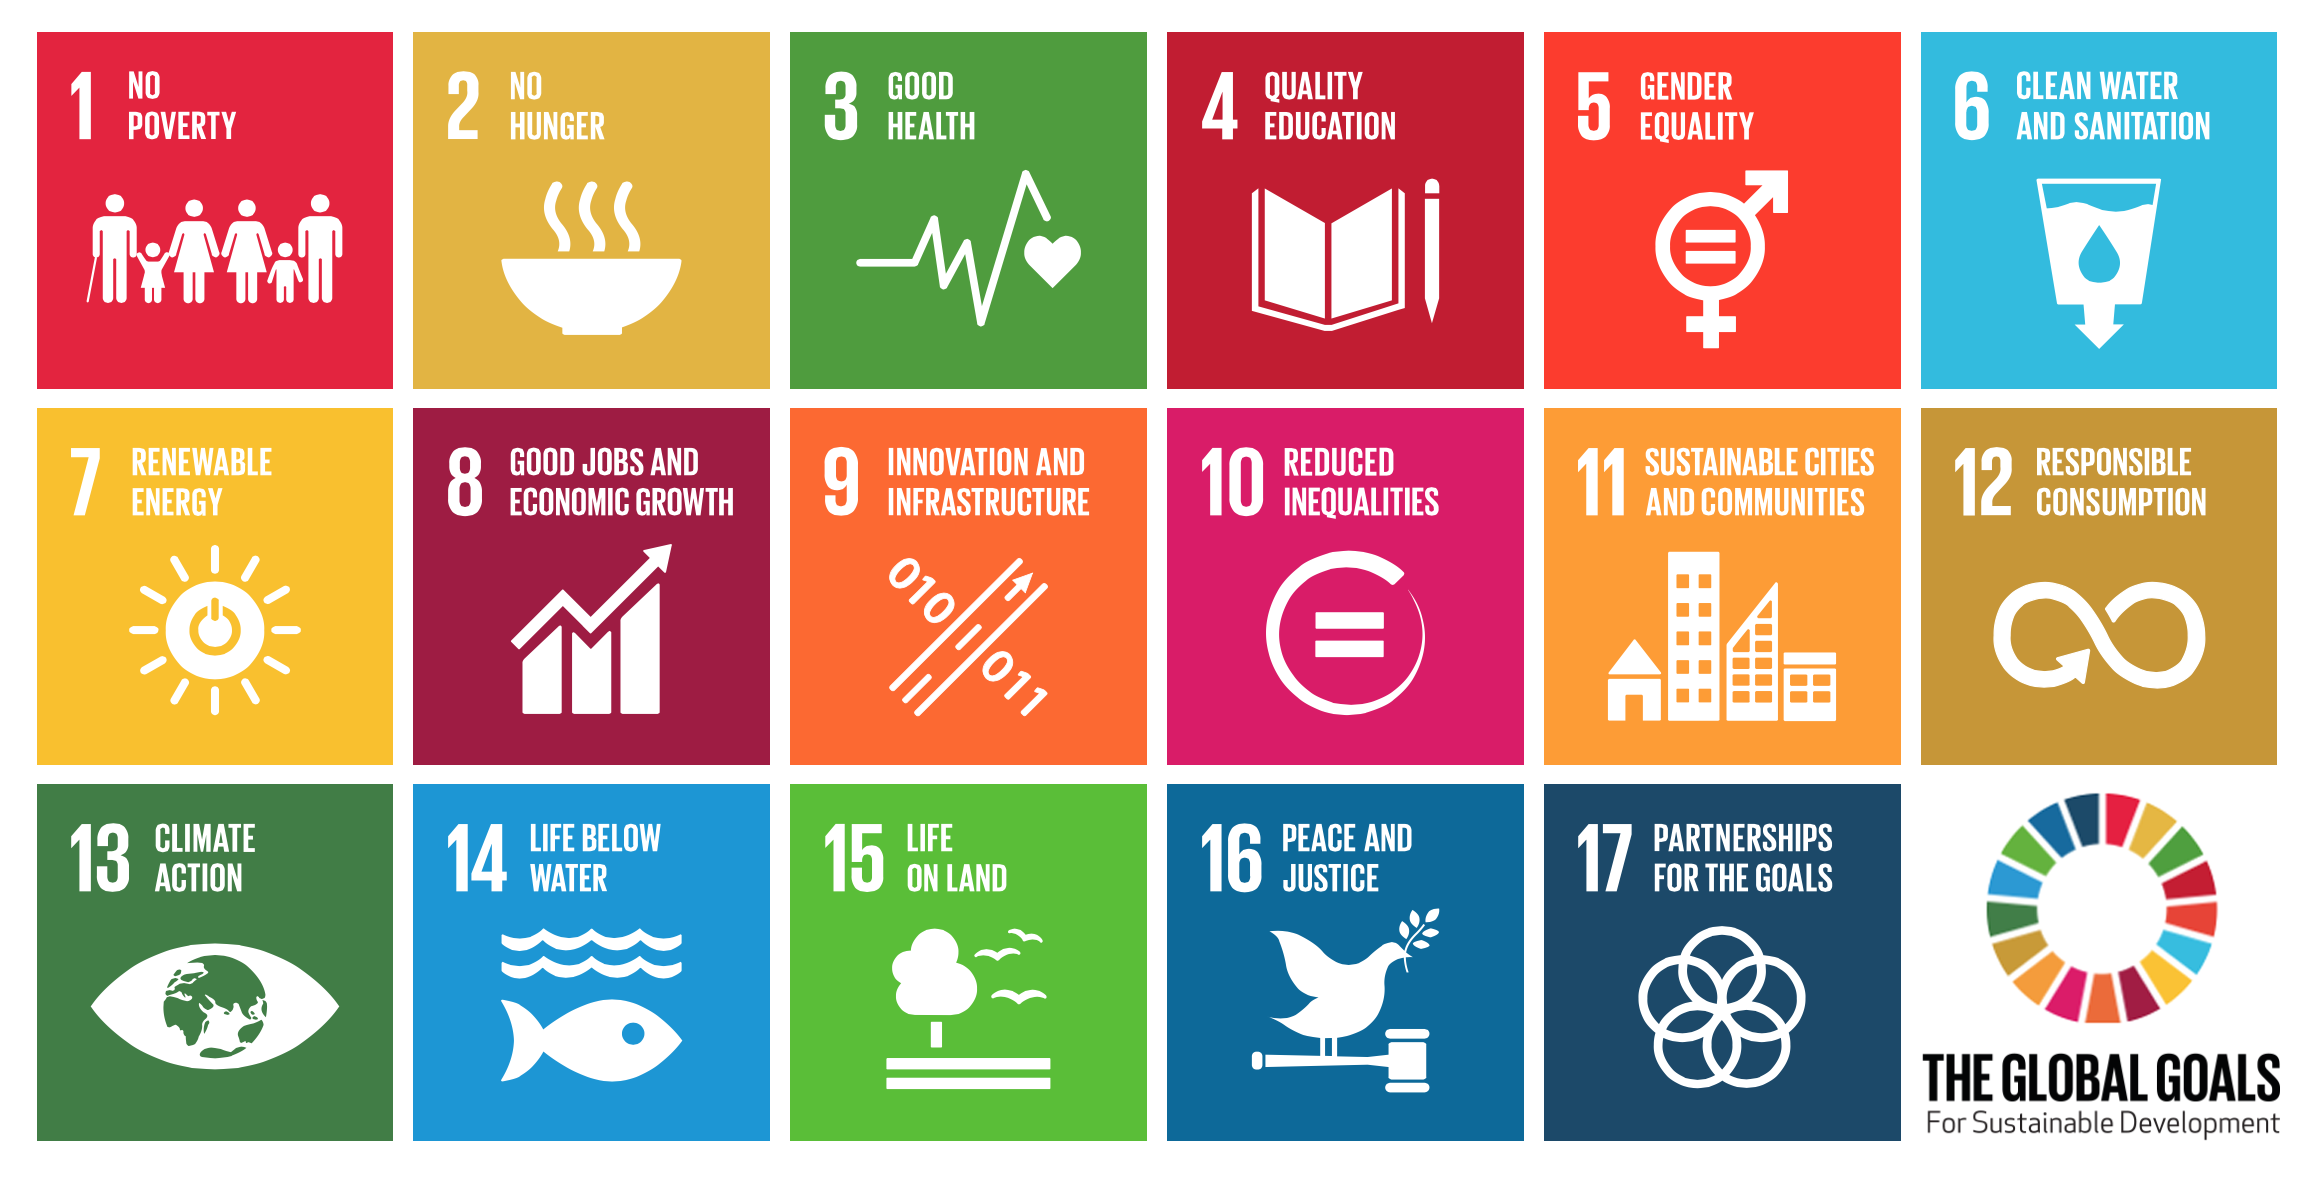 United Nations Millennium Development Goals.png